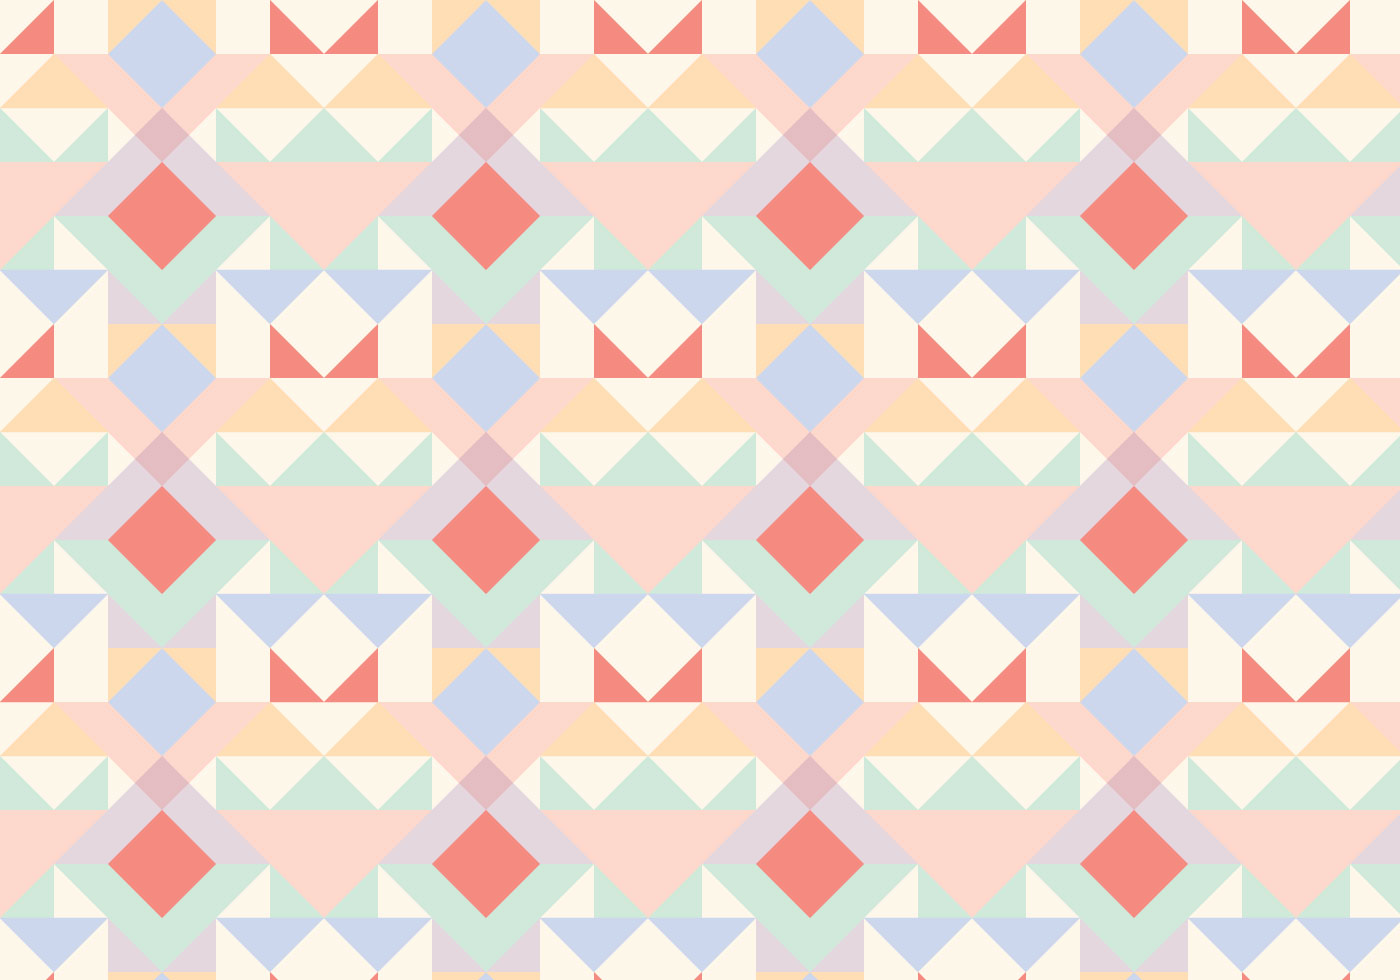 Pastel Geometric Abstract Pattern - Download Free Vector ...